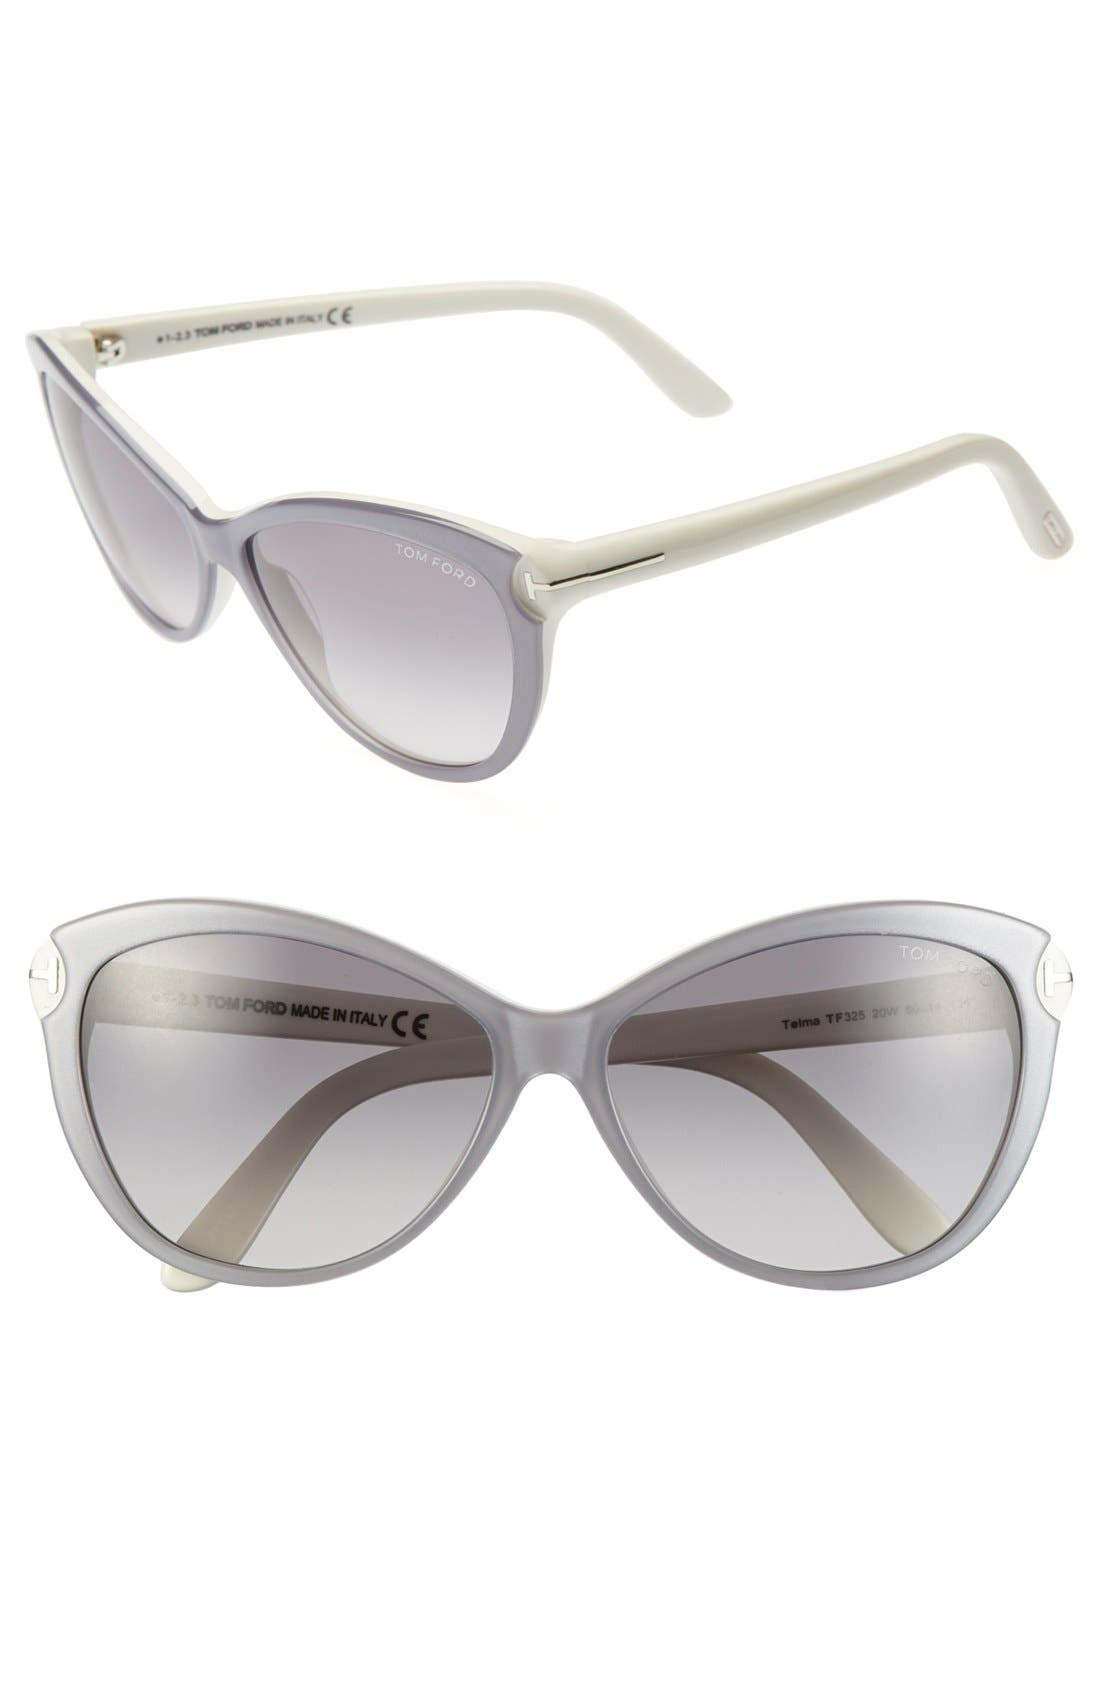 Main Image - Tom Ford 'Telma' 60mm Cat Eye Sunglasses